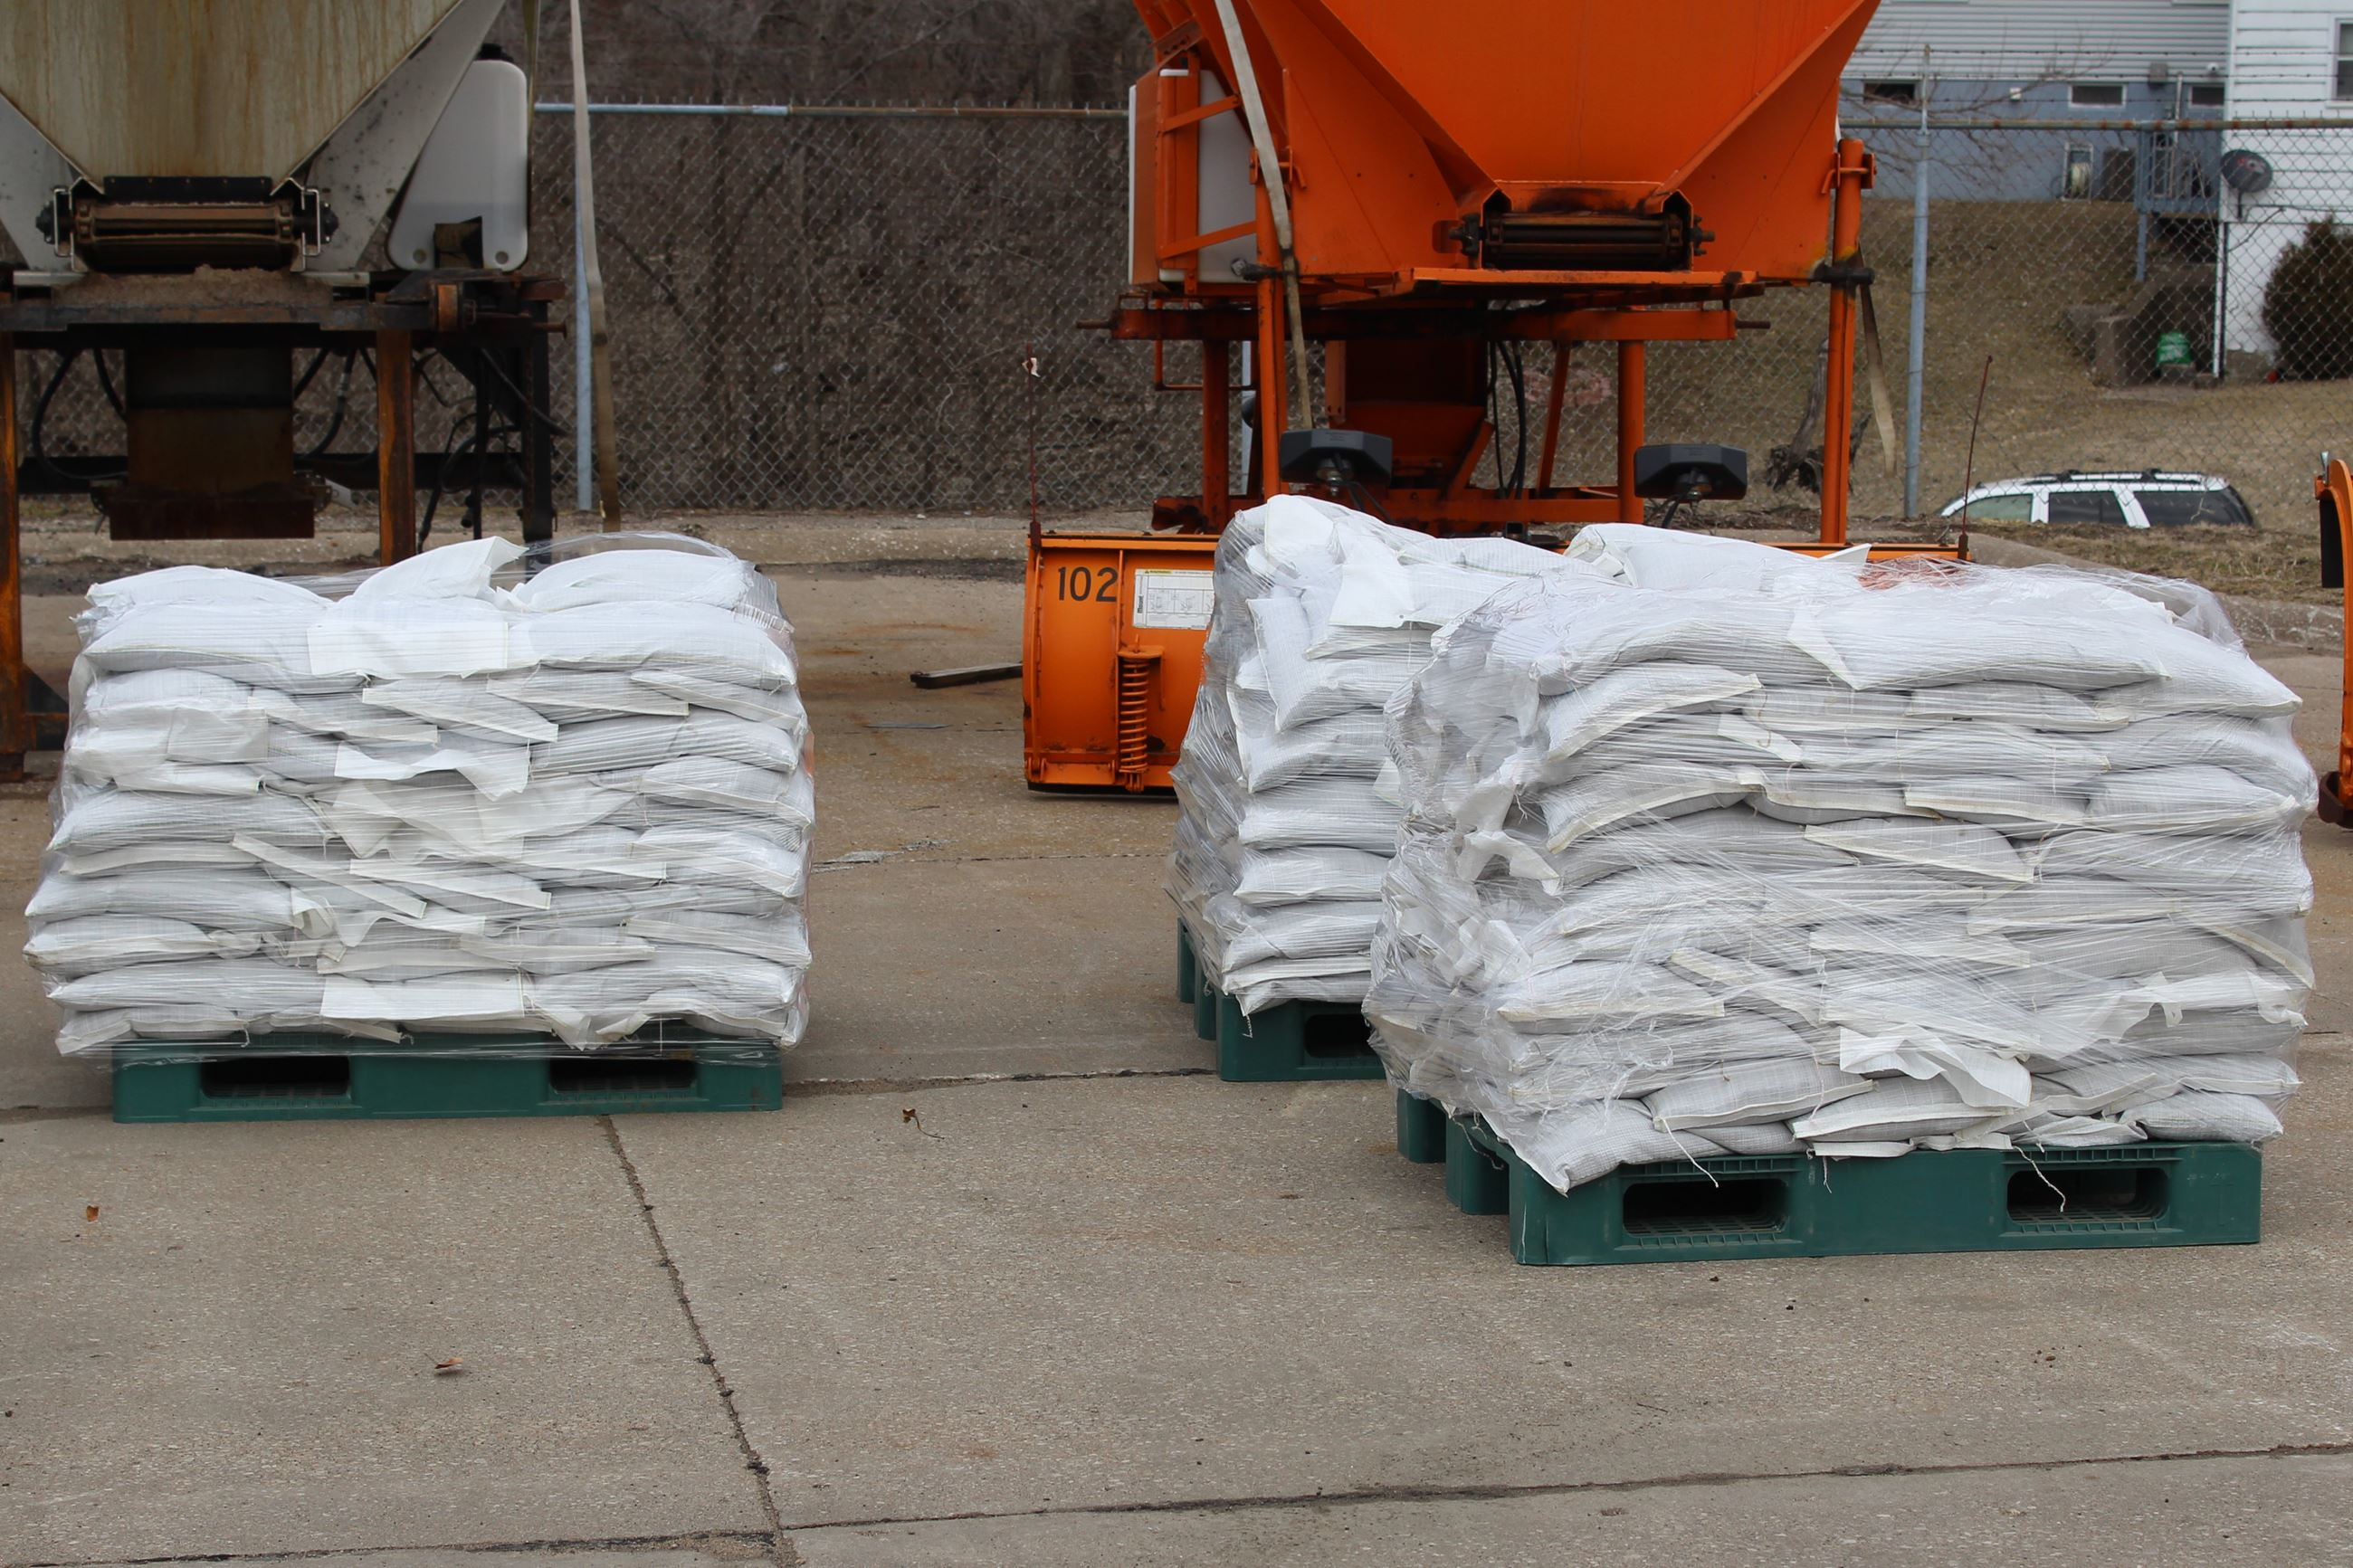 Pallets of sand bags prepared for use 03-14-19 (JPG)